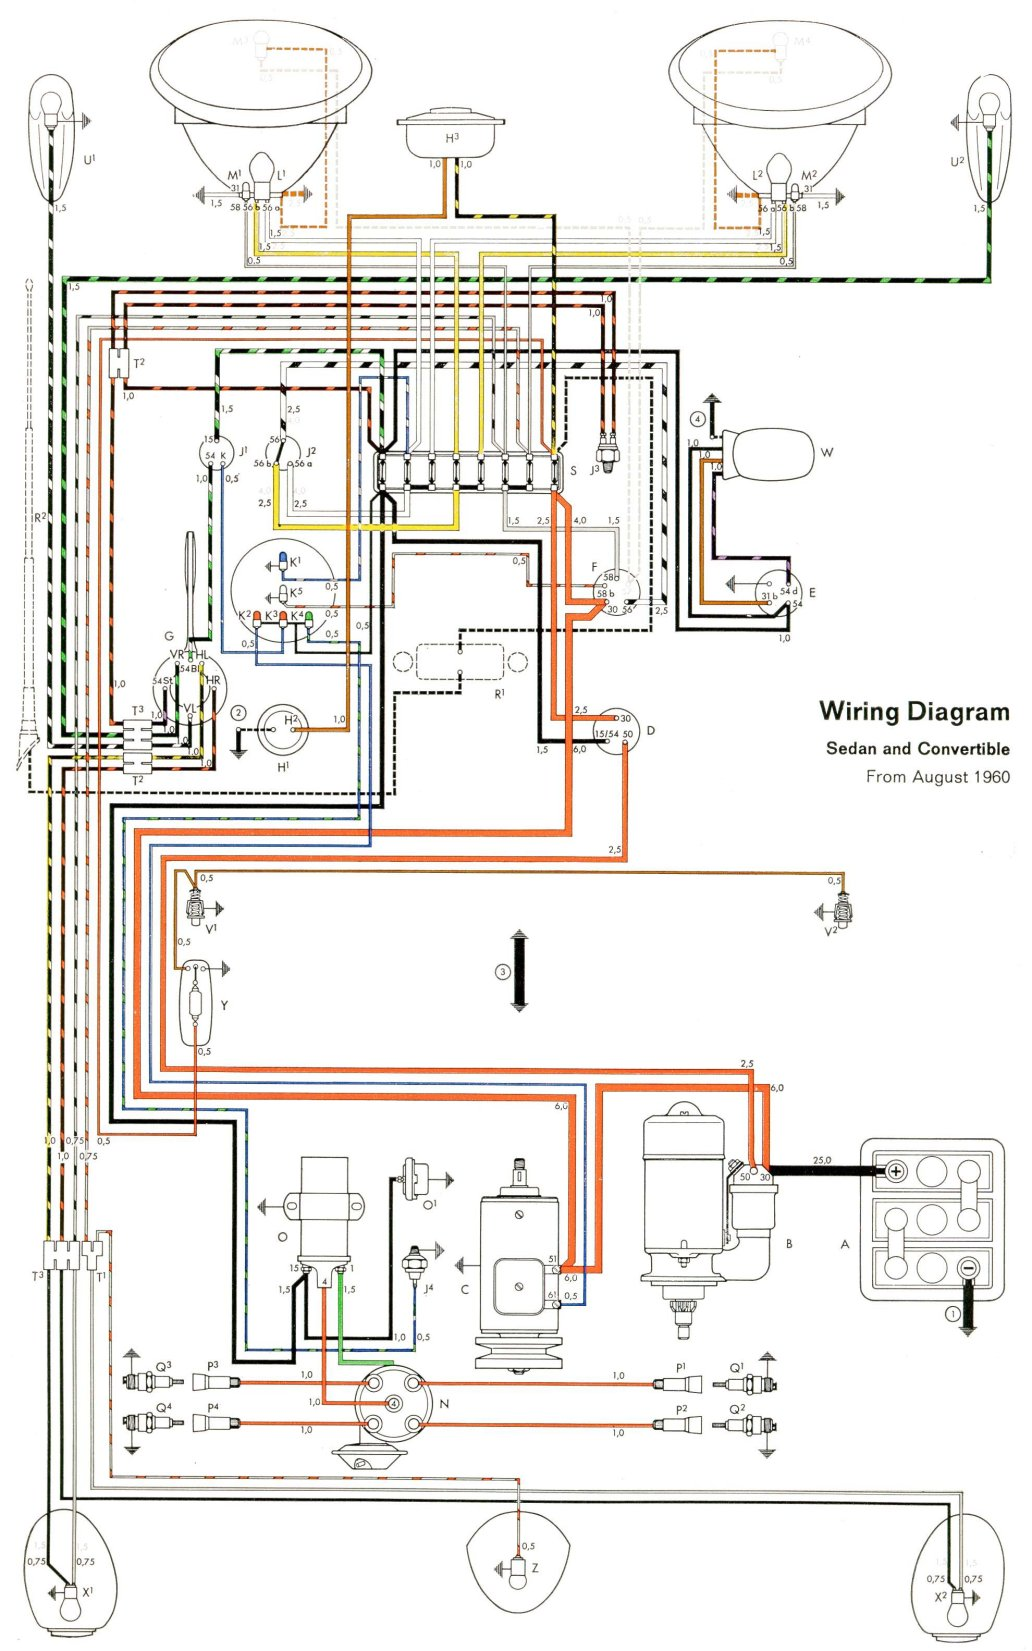 bug_61 thesamba com type 1 wiring diagrams 1974 vw beetle wiring diagram at virtualis.co